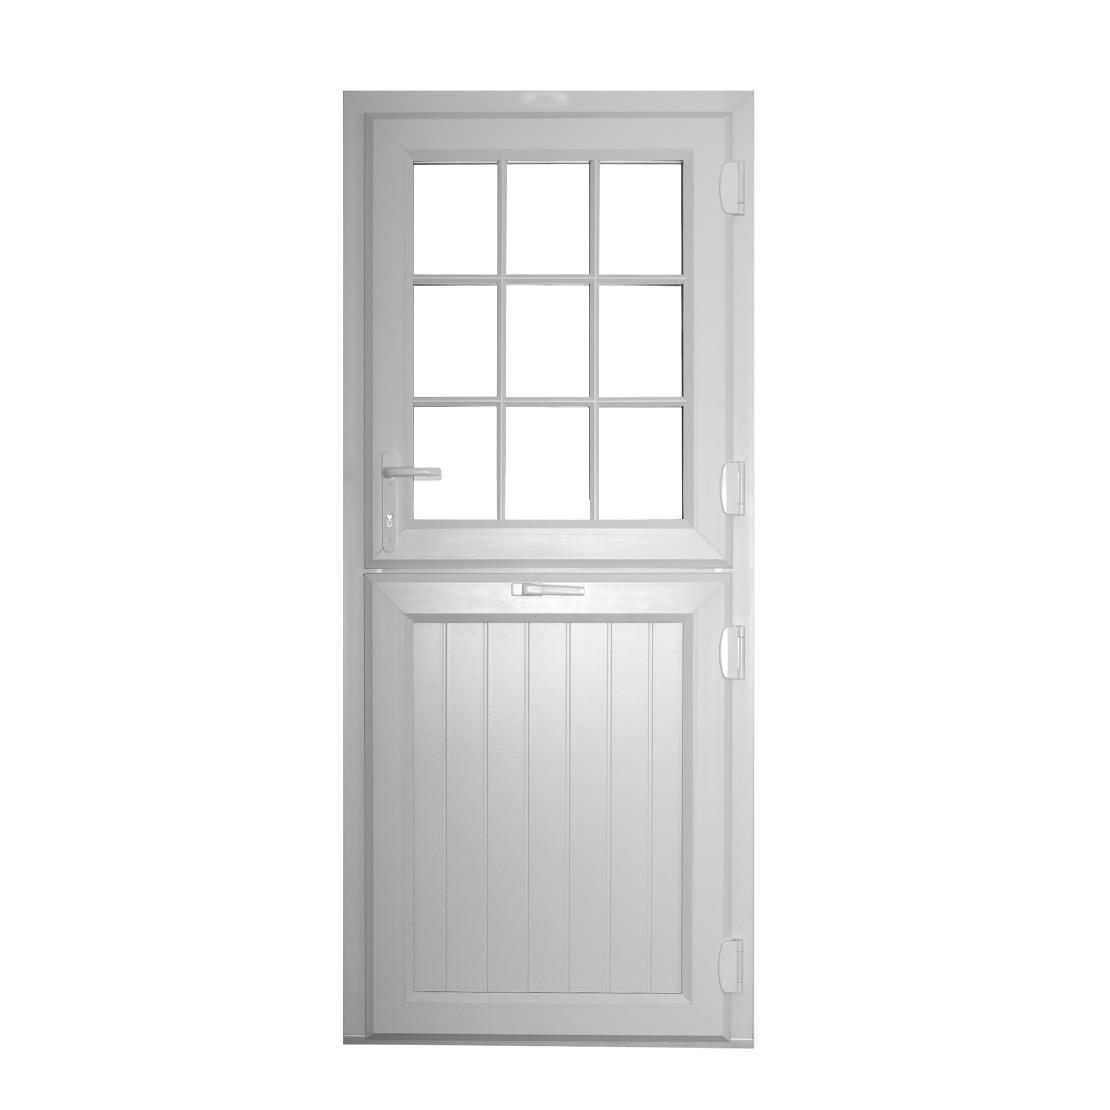 Liniar upvc doors uckfield brighton tonbridge redhill for Upvc windows and doors